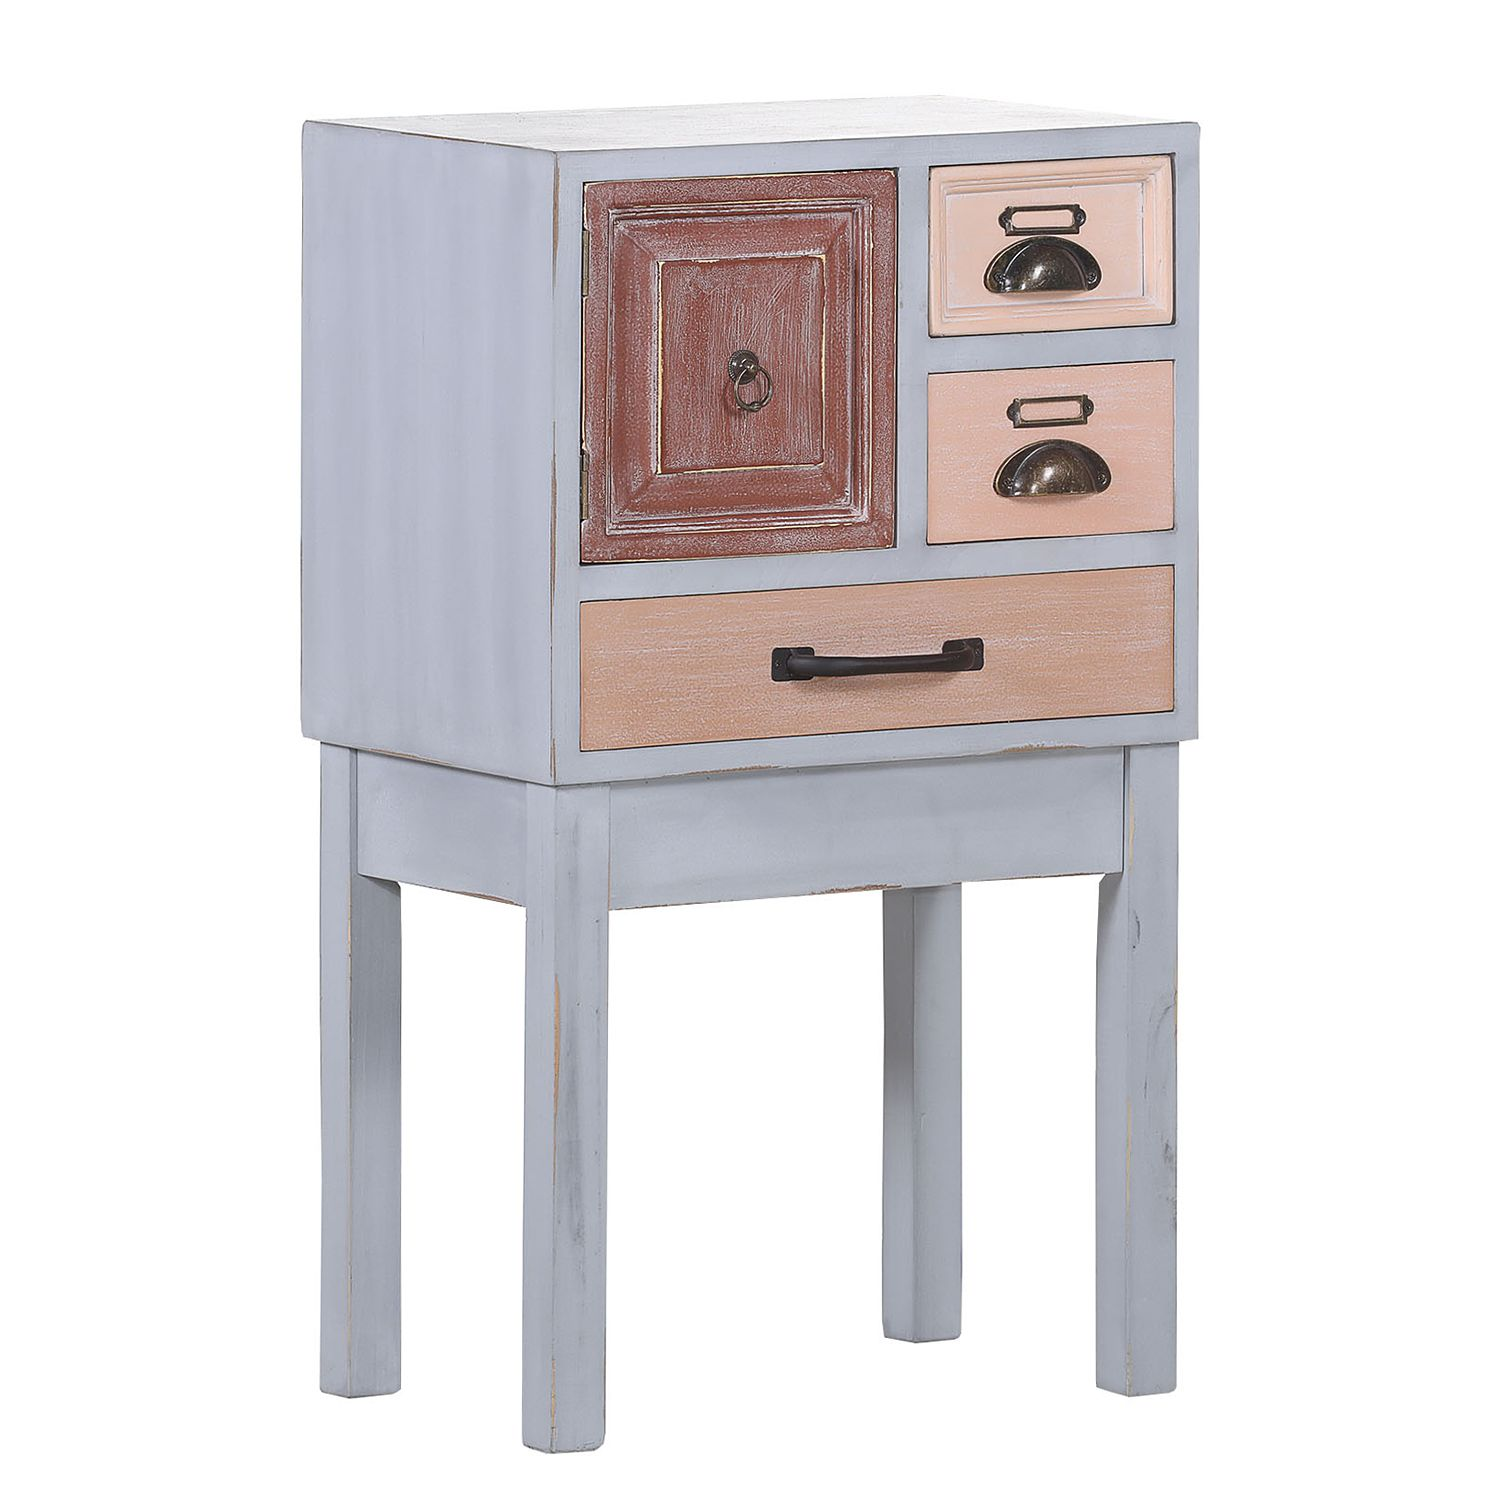 Commode Malden III - Sapin partiellement massif - Vieux rose / Gris clair, ars manufacti